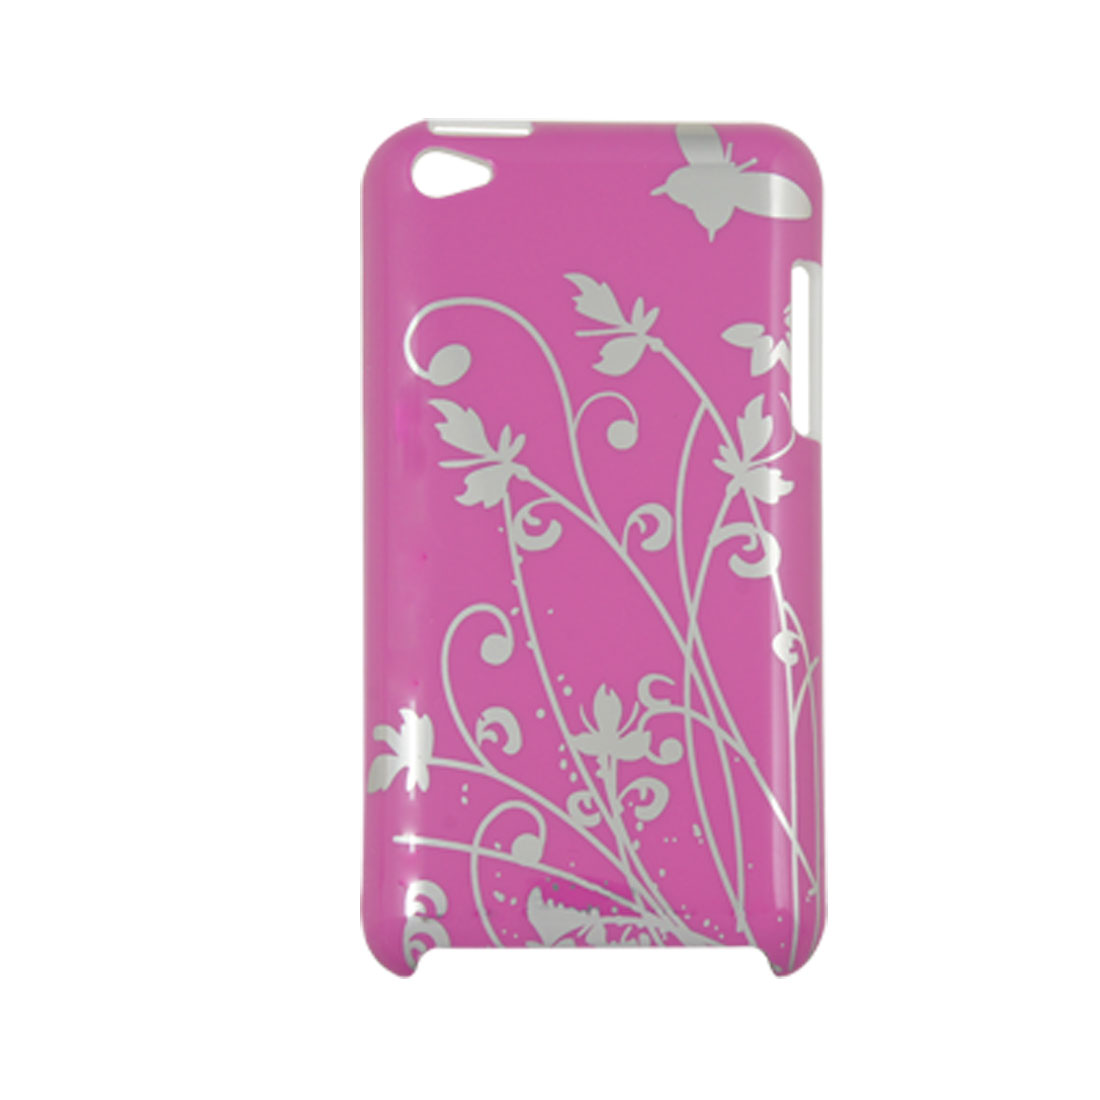 Floral Print Amaranth Pink IMD Plastic Back Case for iPod Touch 4G